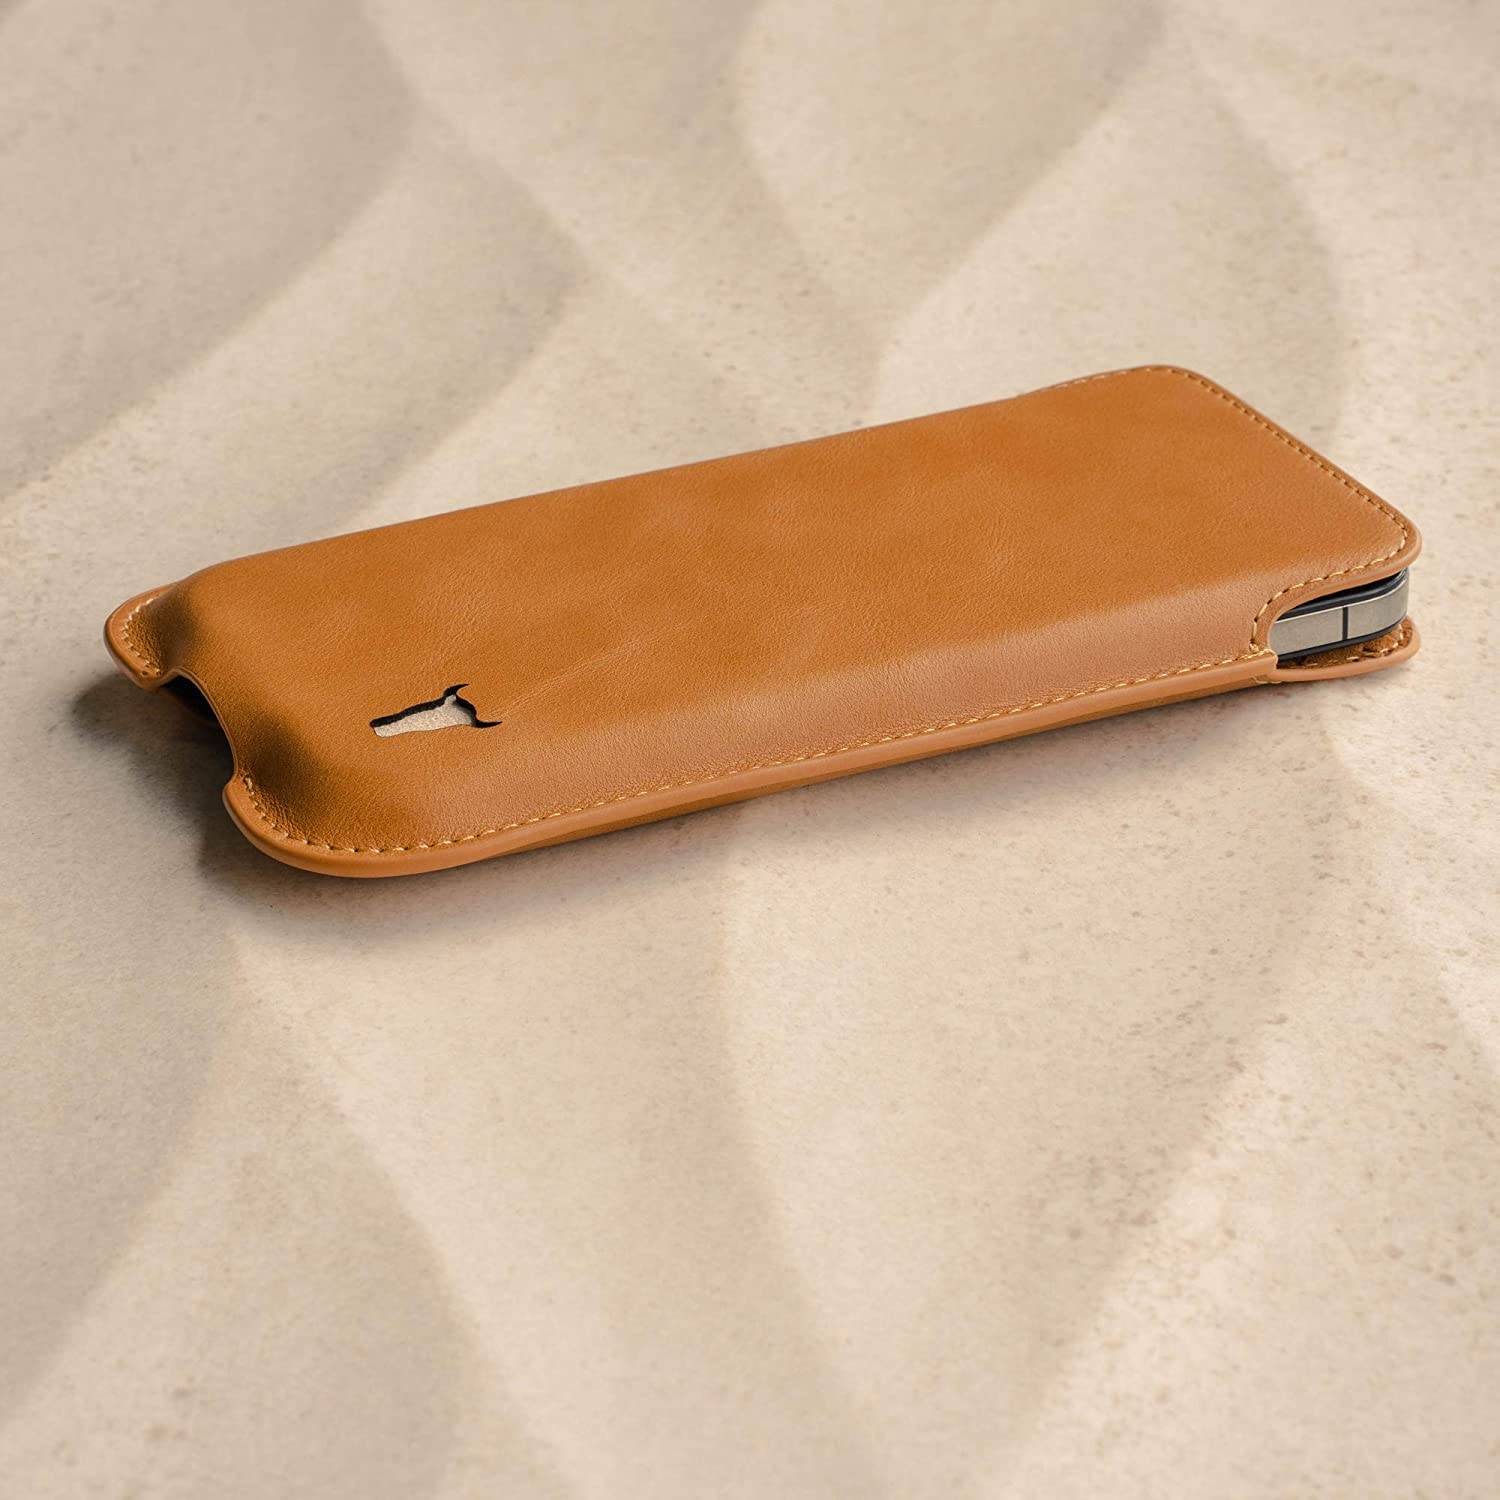 TORRO Sleeve Case Compatible With Apple iPhone 12 Pro Max Tan Slim Profile and Lightweight Genuine Leather Pouch Cover Quality